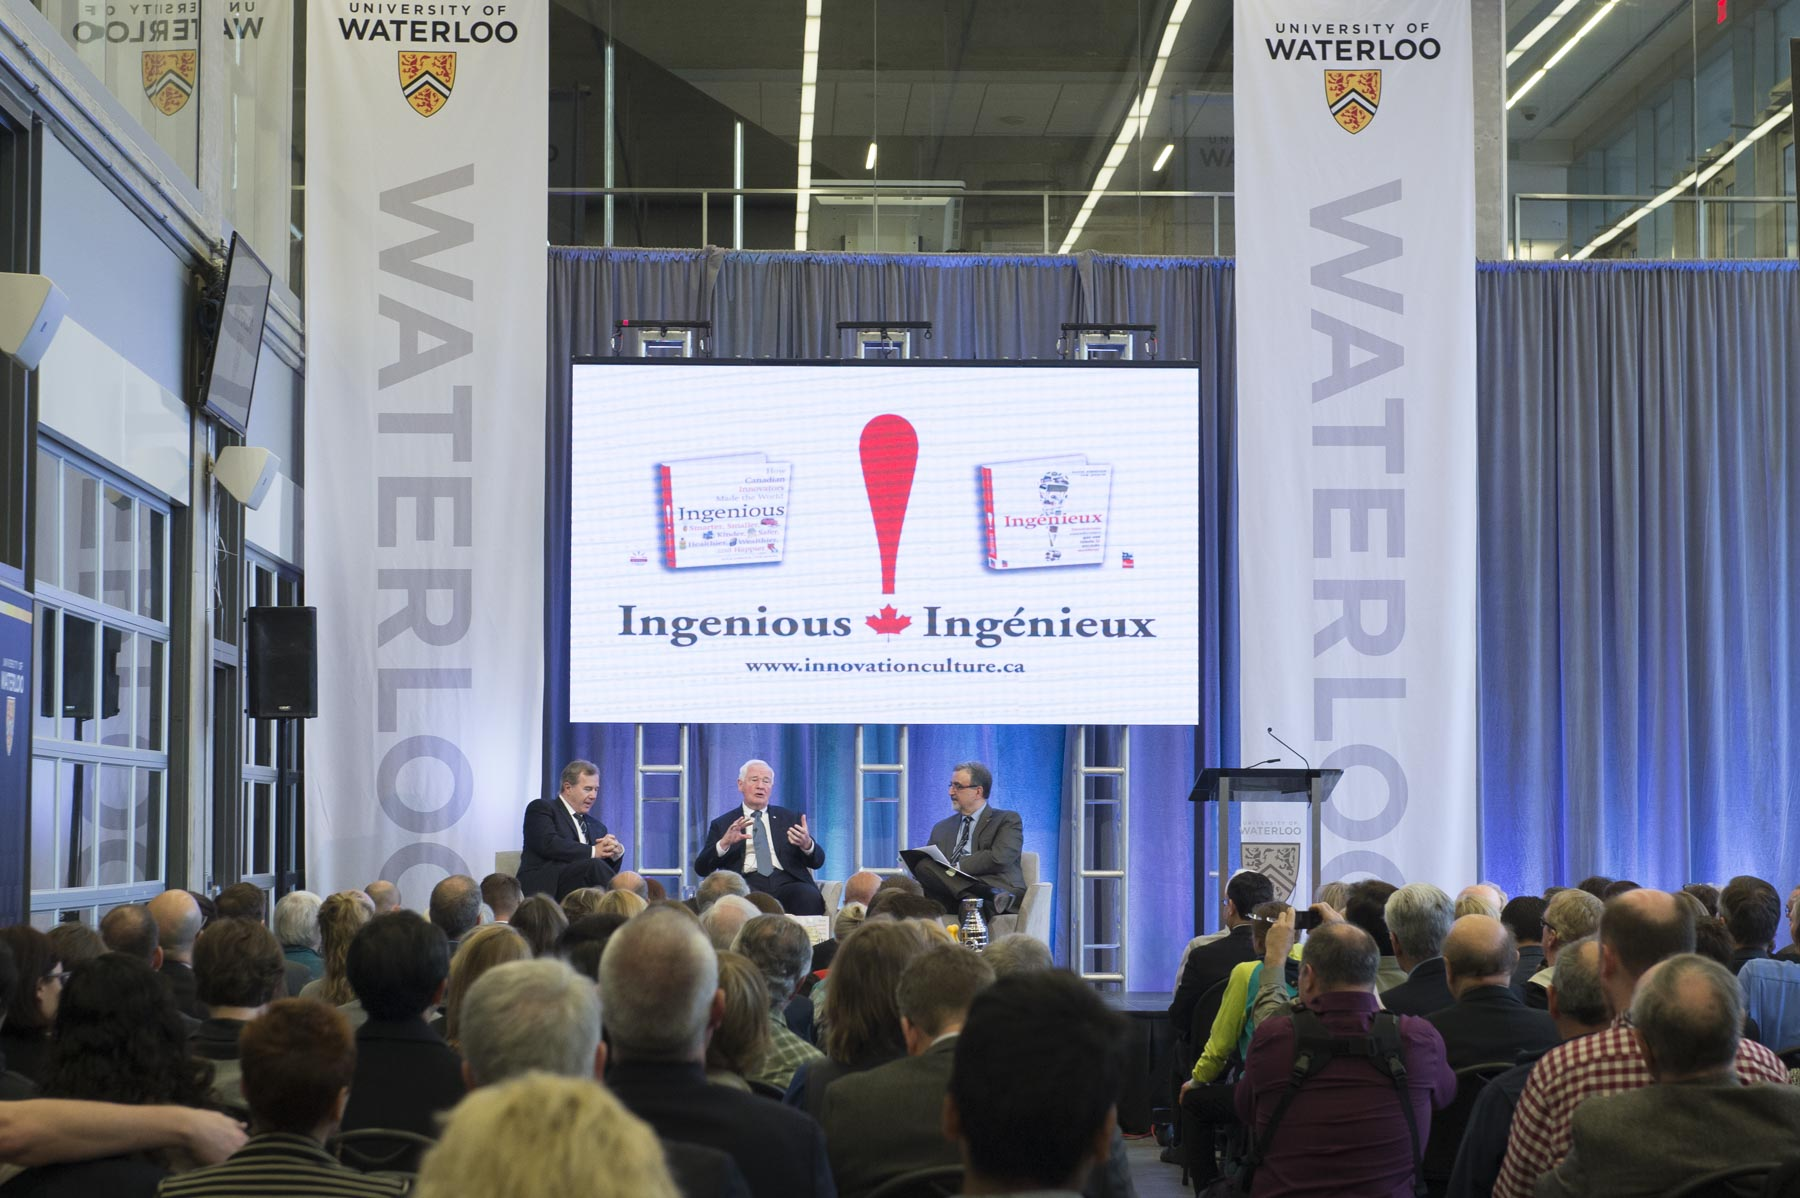 During an on-stage conversation hosted by Feridun Hamdullahpur, President and Vice-Chancellor of the University of Waterloo, the Governor General and Mr. Jenkins spoke about their book, Ingenious.